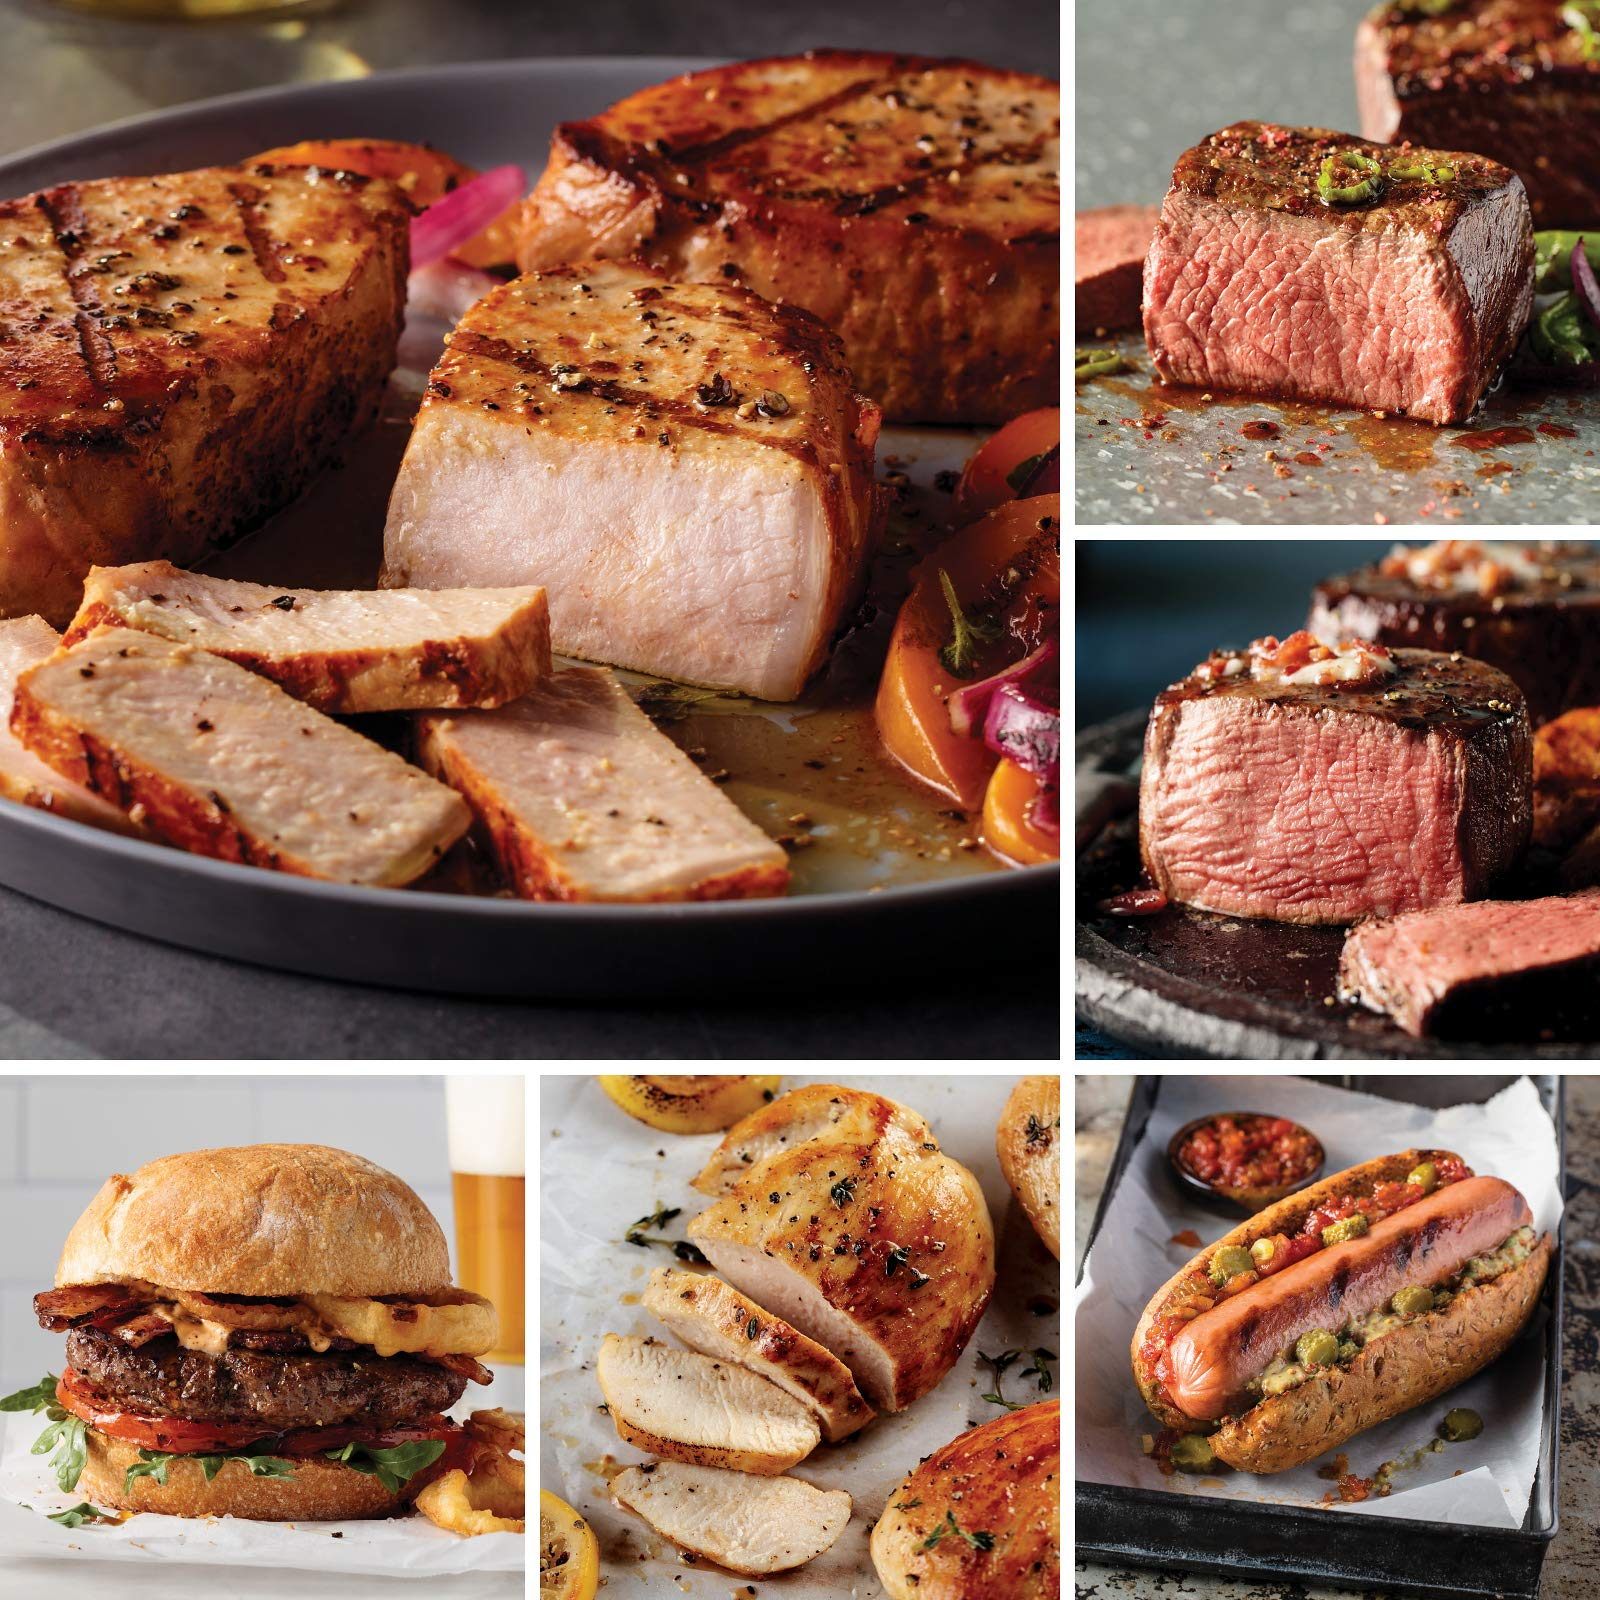 Omaha Steaks Yuletide Traditions Collection (26-Piece with Top Sirloins, Filet Mignons, Boneless Chicken Breasts, Steak Burgers, Boneless Pork Chops, Jumbo Franks, and Caramel Apple Tartlets) by Omaha Steaks (Image #1)